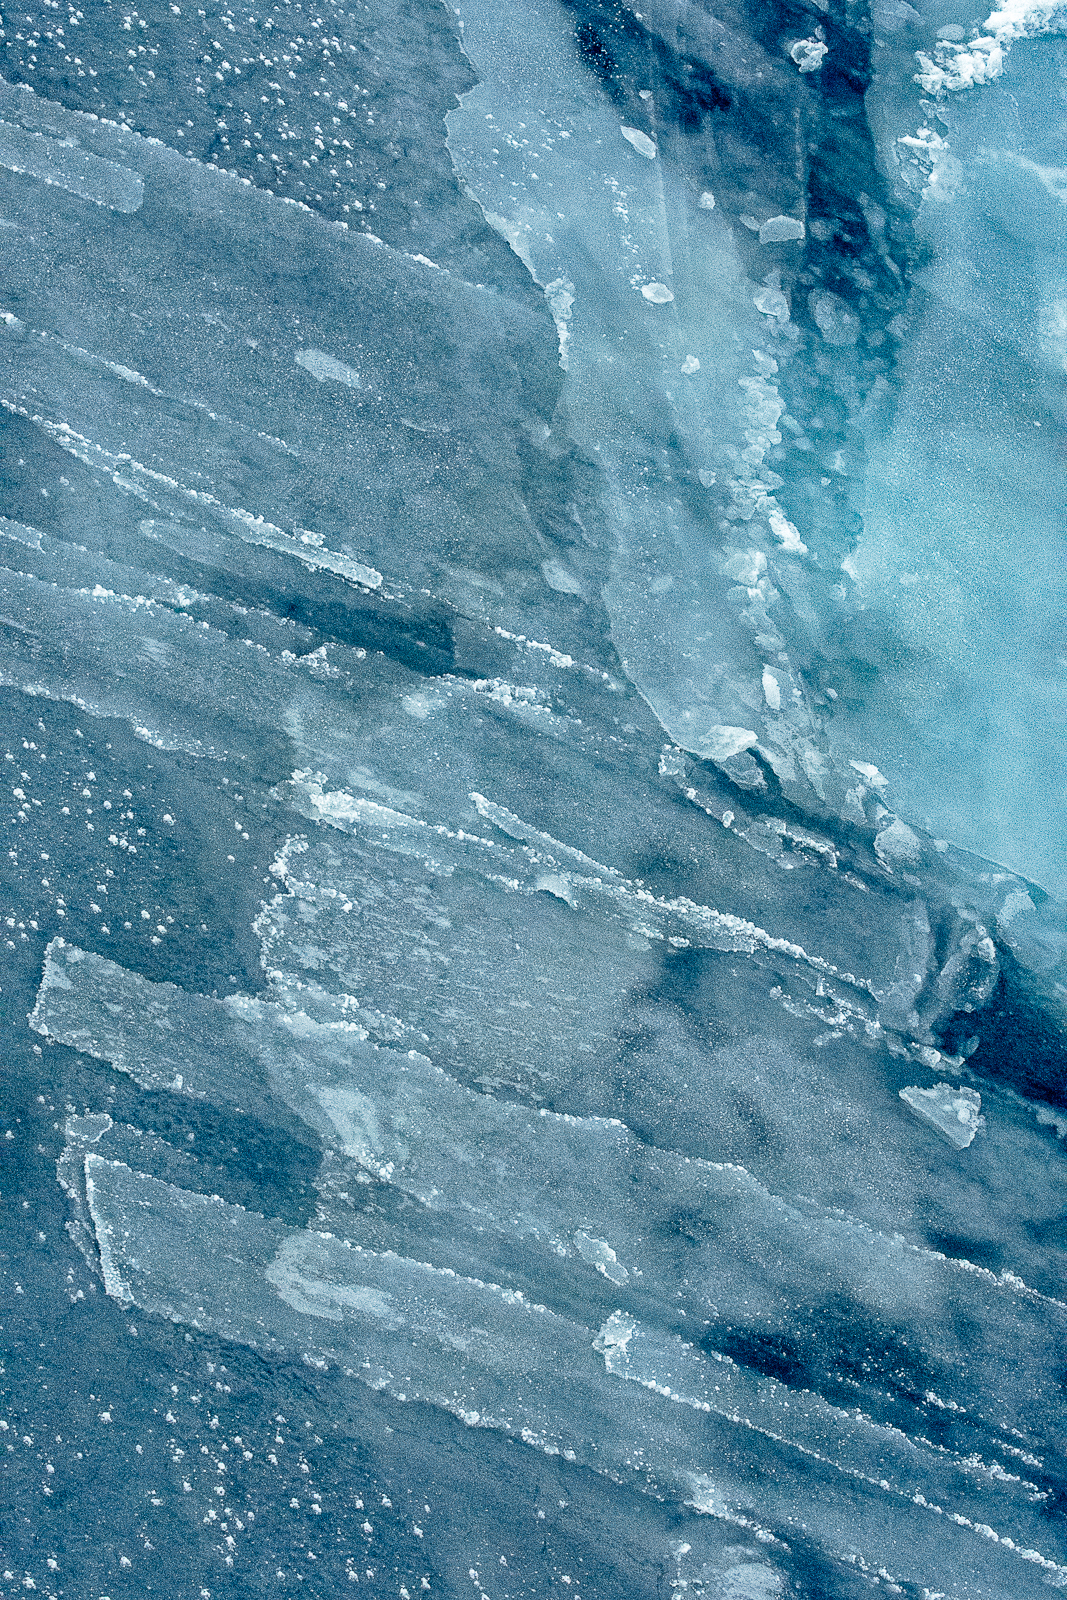 Ice Fingers in the Weddell Sea